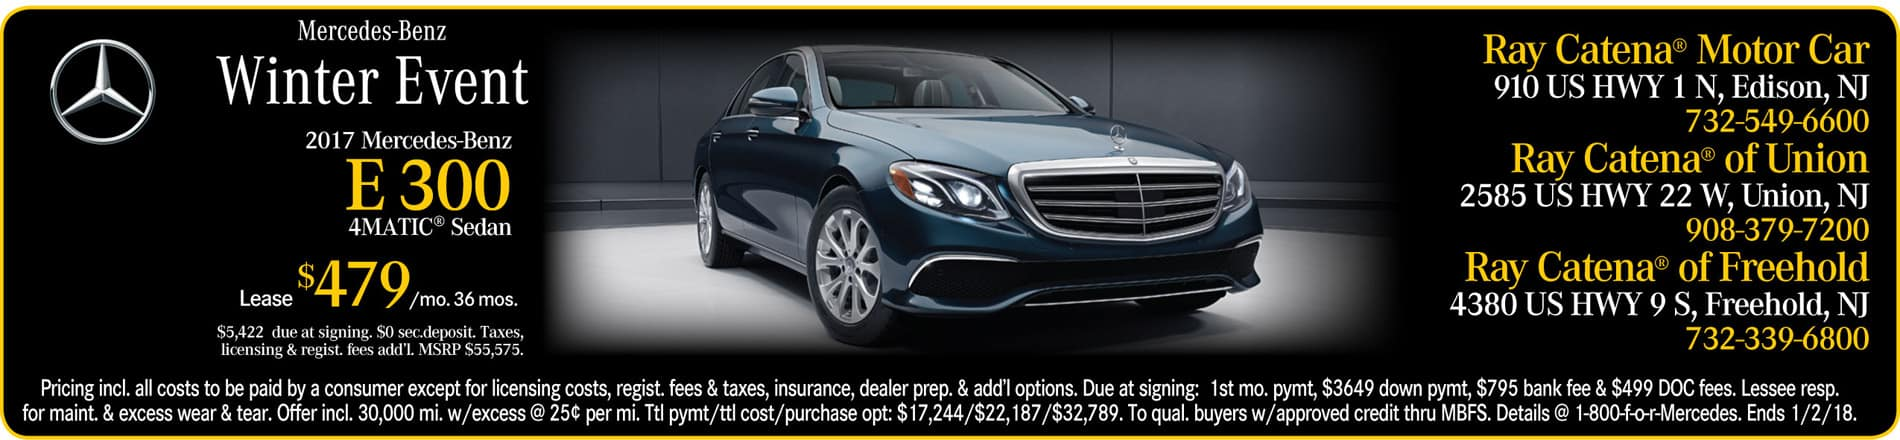 Welcome to ray catena 39 s central new jersey dealerships for Ray catena mercedes benz edison nj